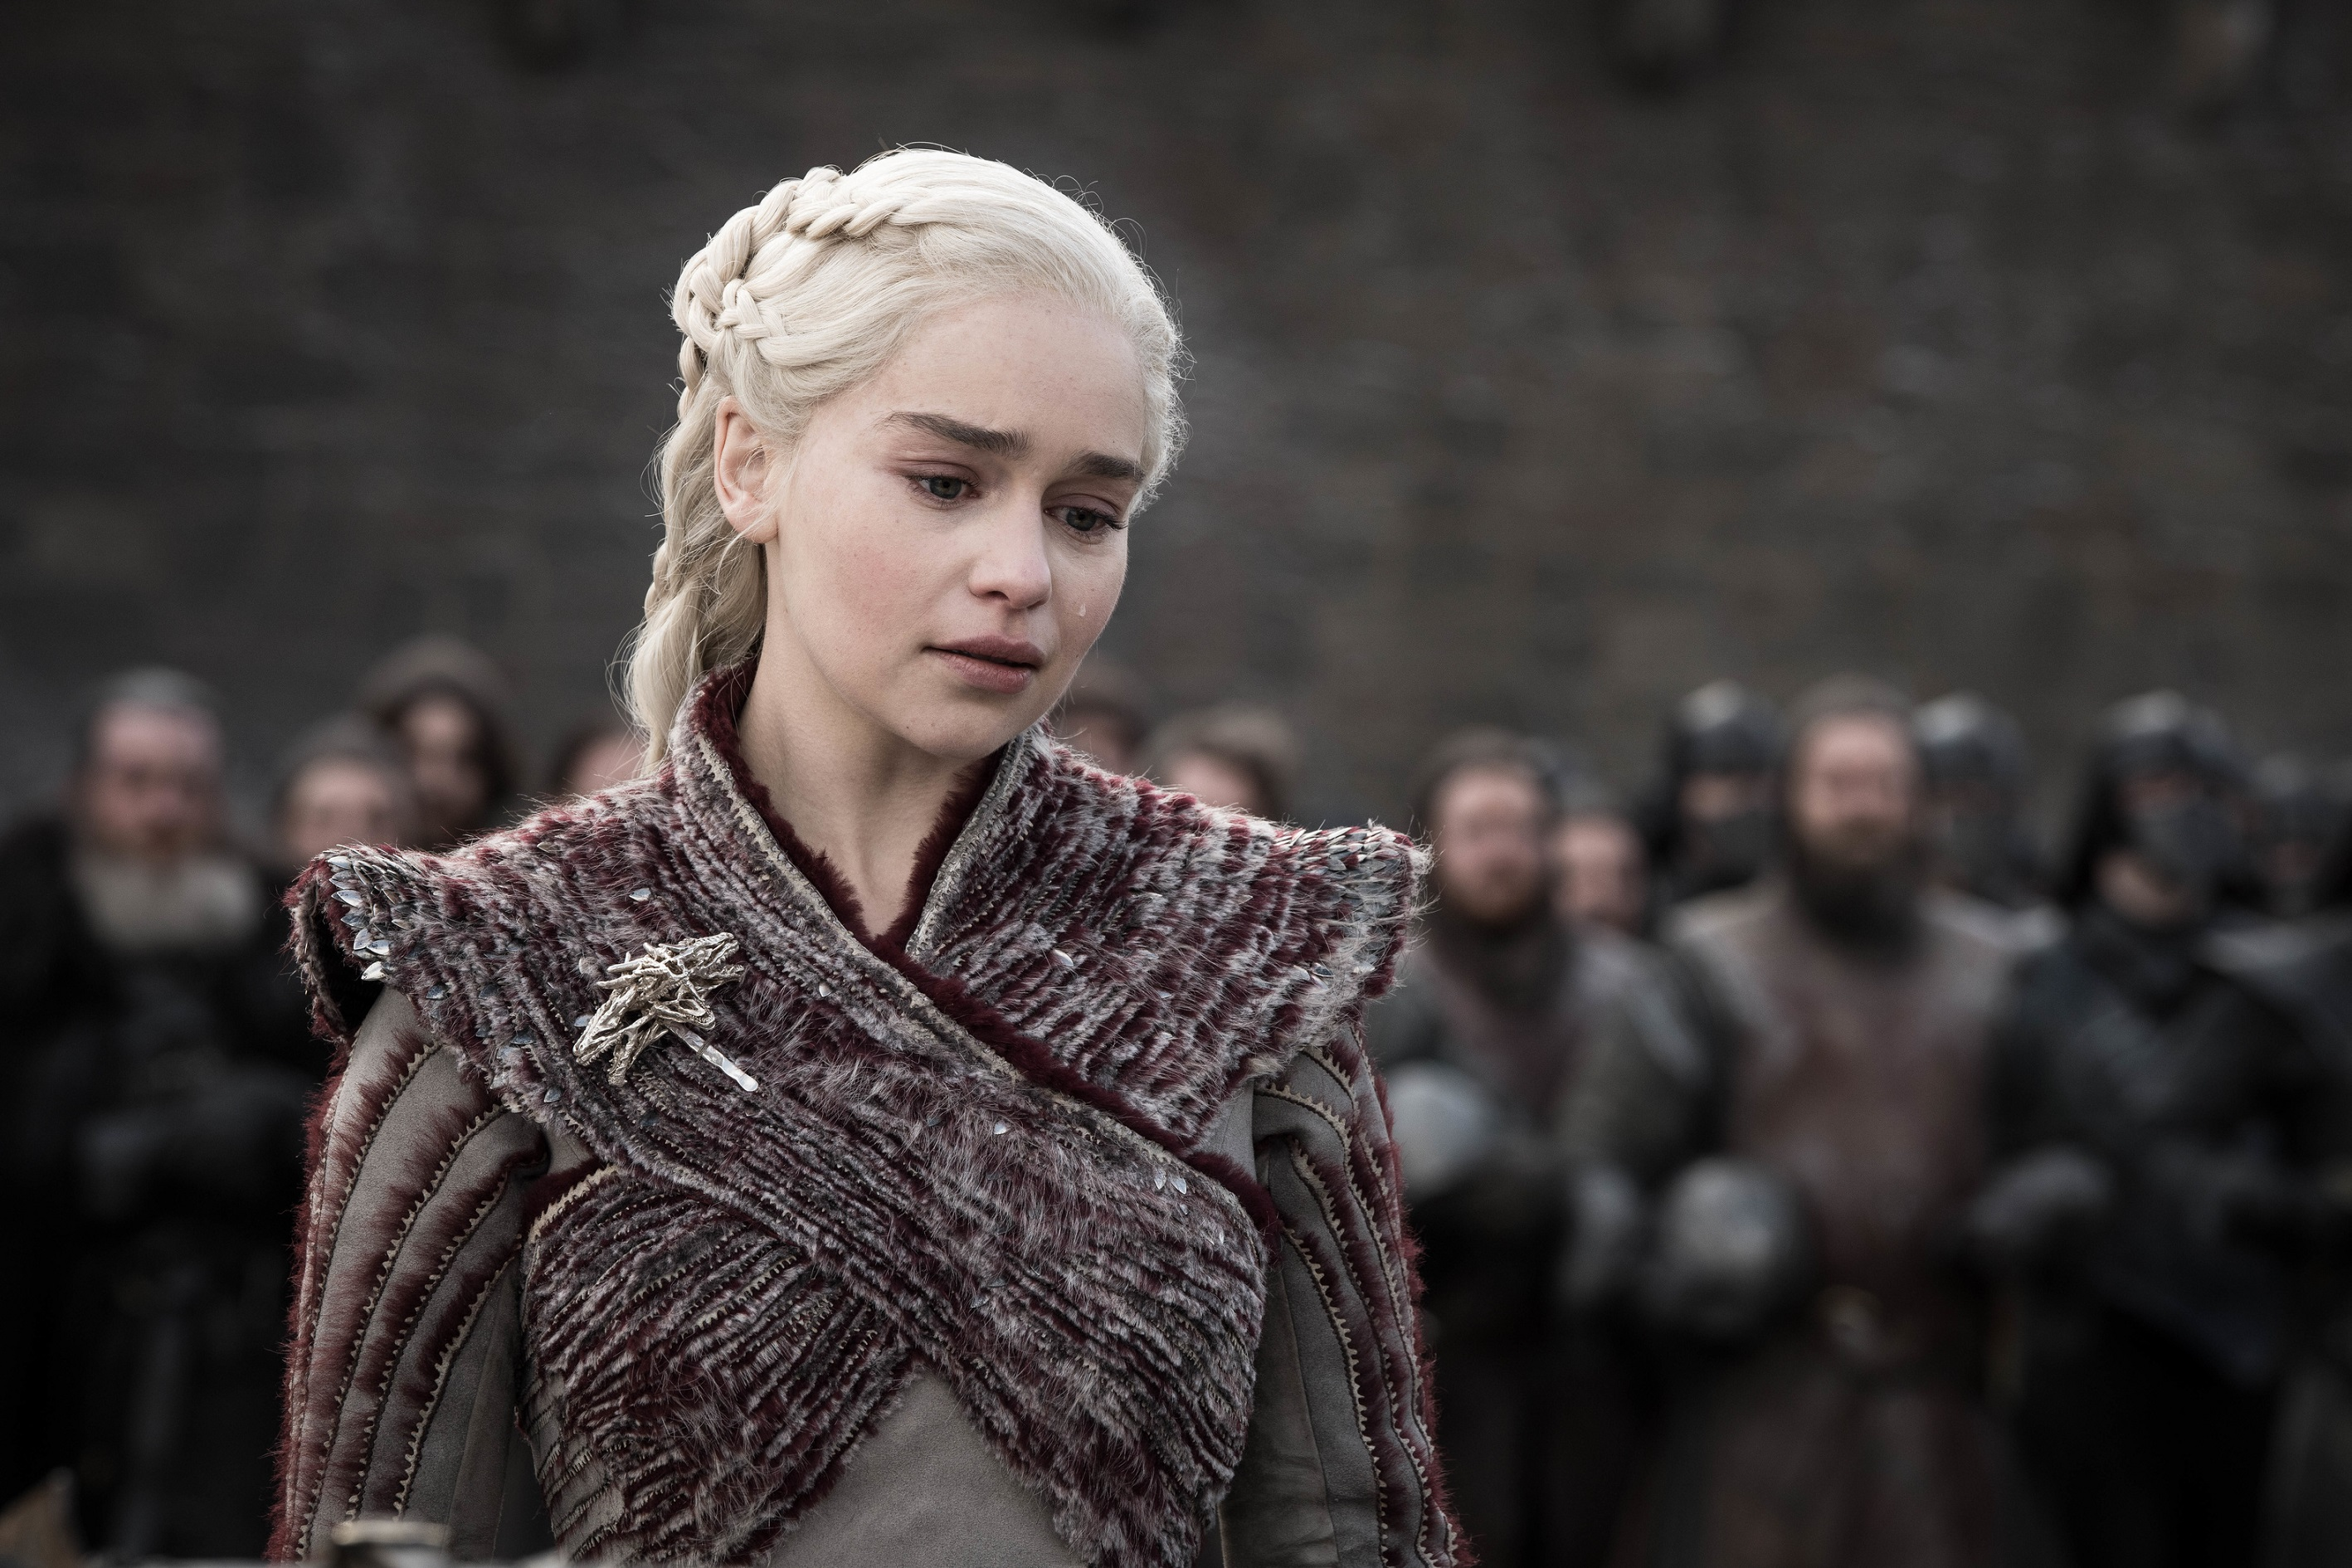 Emilia Clarke Heartbroken At Fan Reaction To Game Of Thrones Ending Season 8 Scripts Reveal Deleted Scenes Watchers On The Wall A Game Of Thrones Community For Breaking News Casting And Commentary